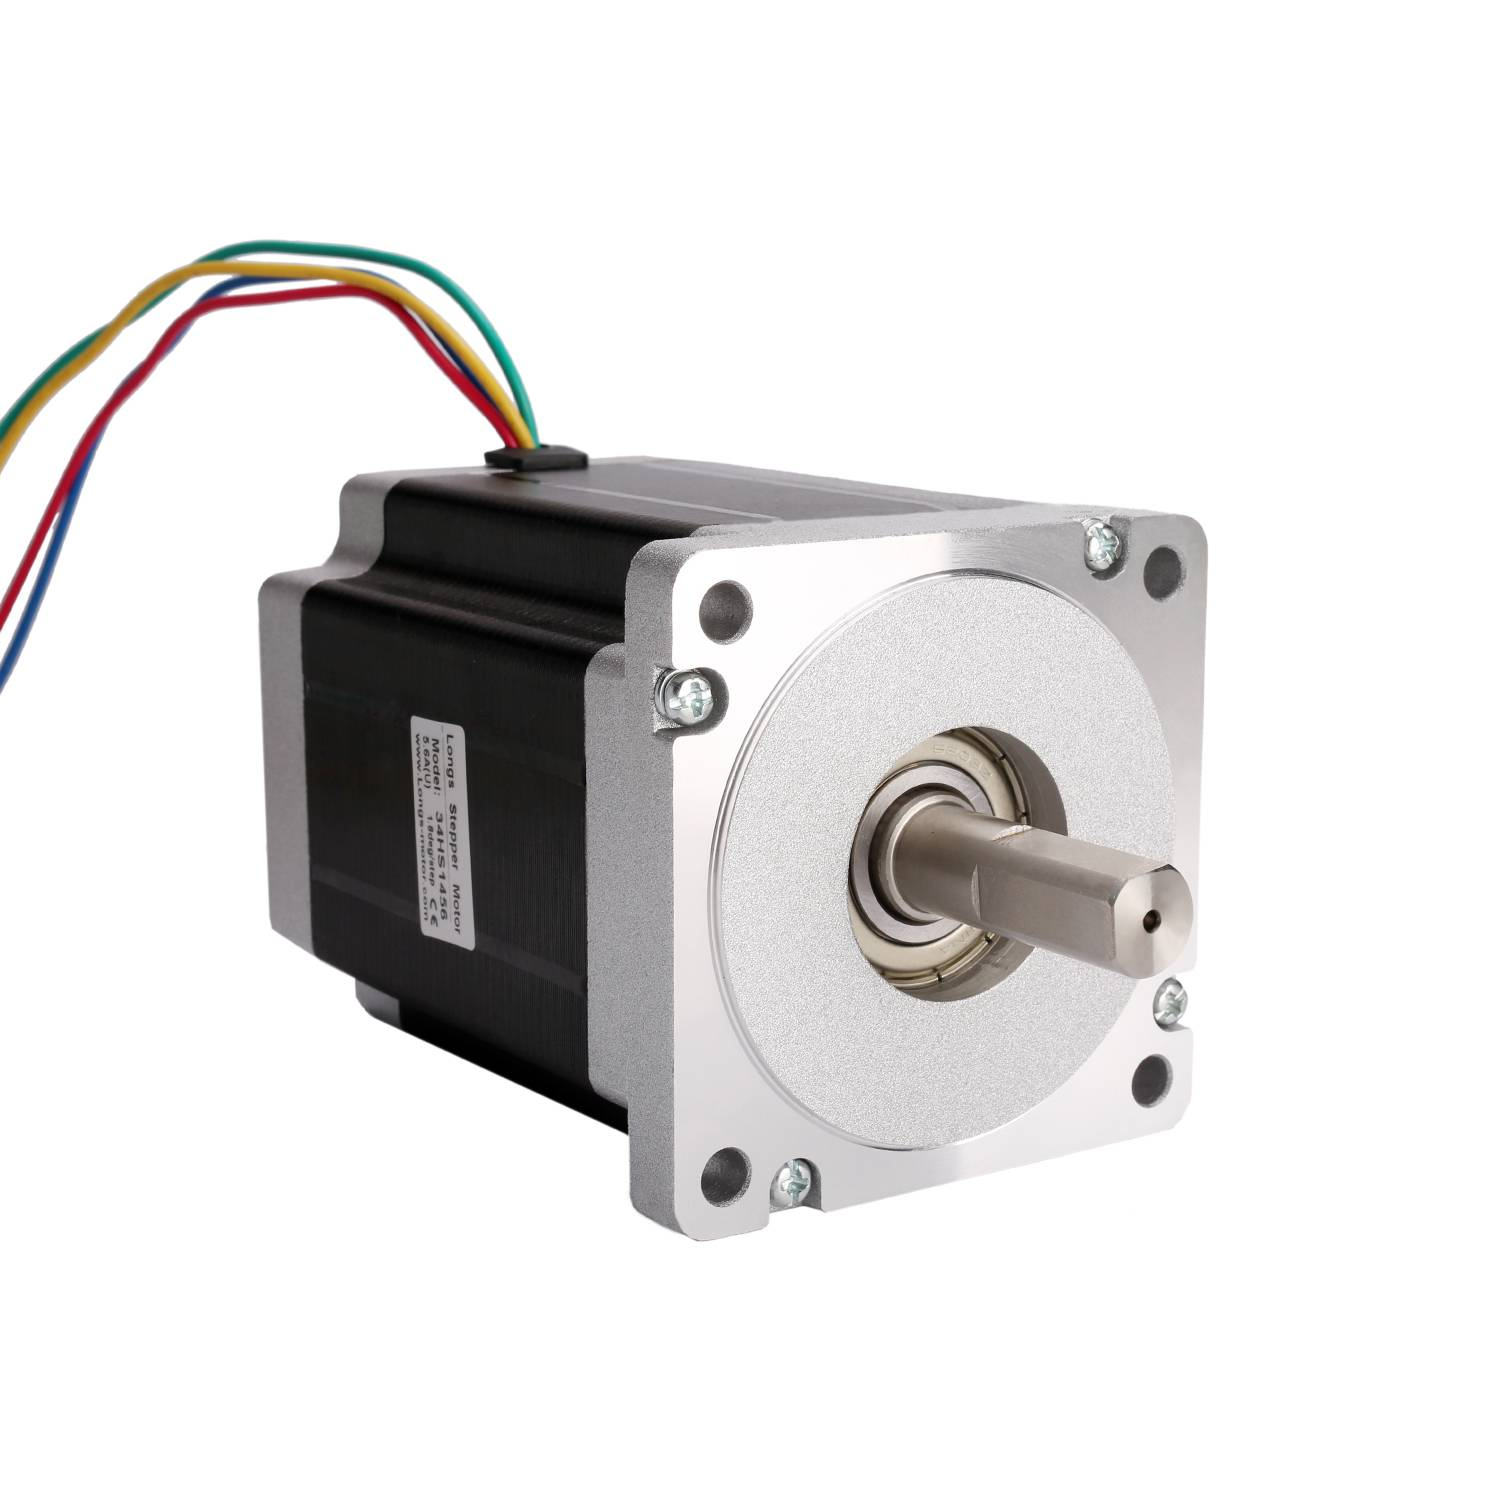 HYBRID stepper motor-Nema34 Featured Image